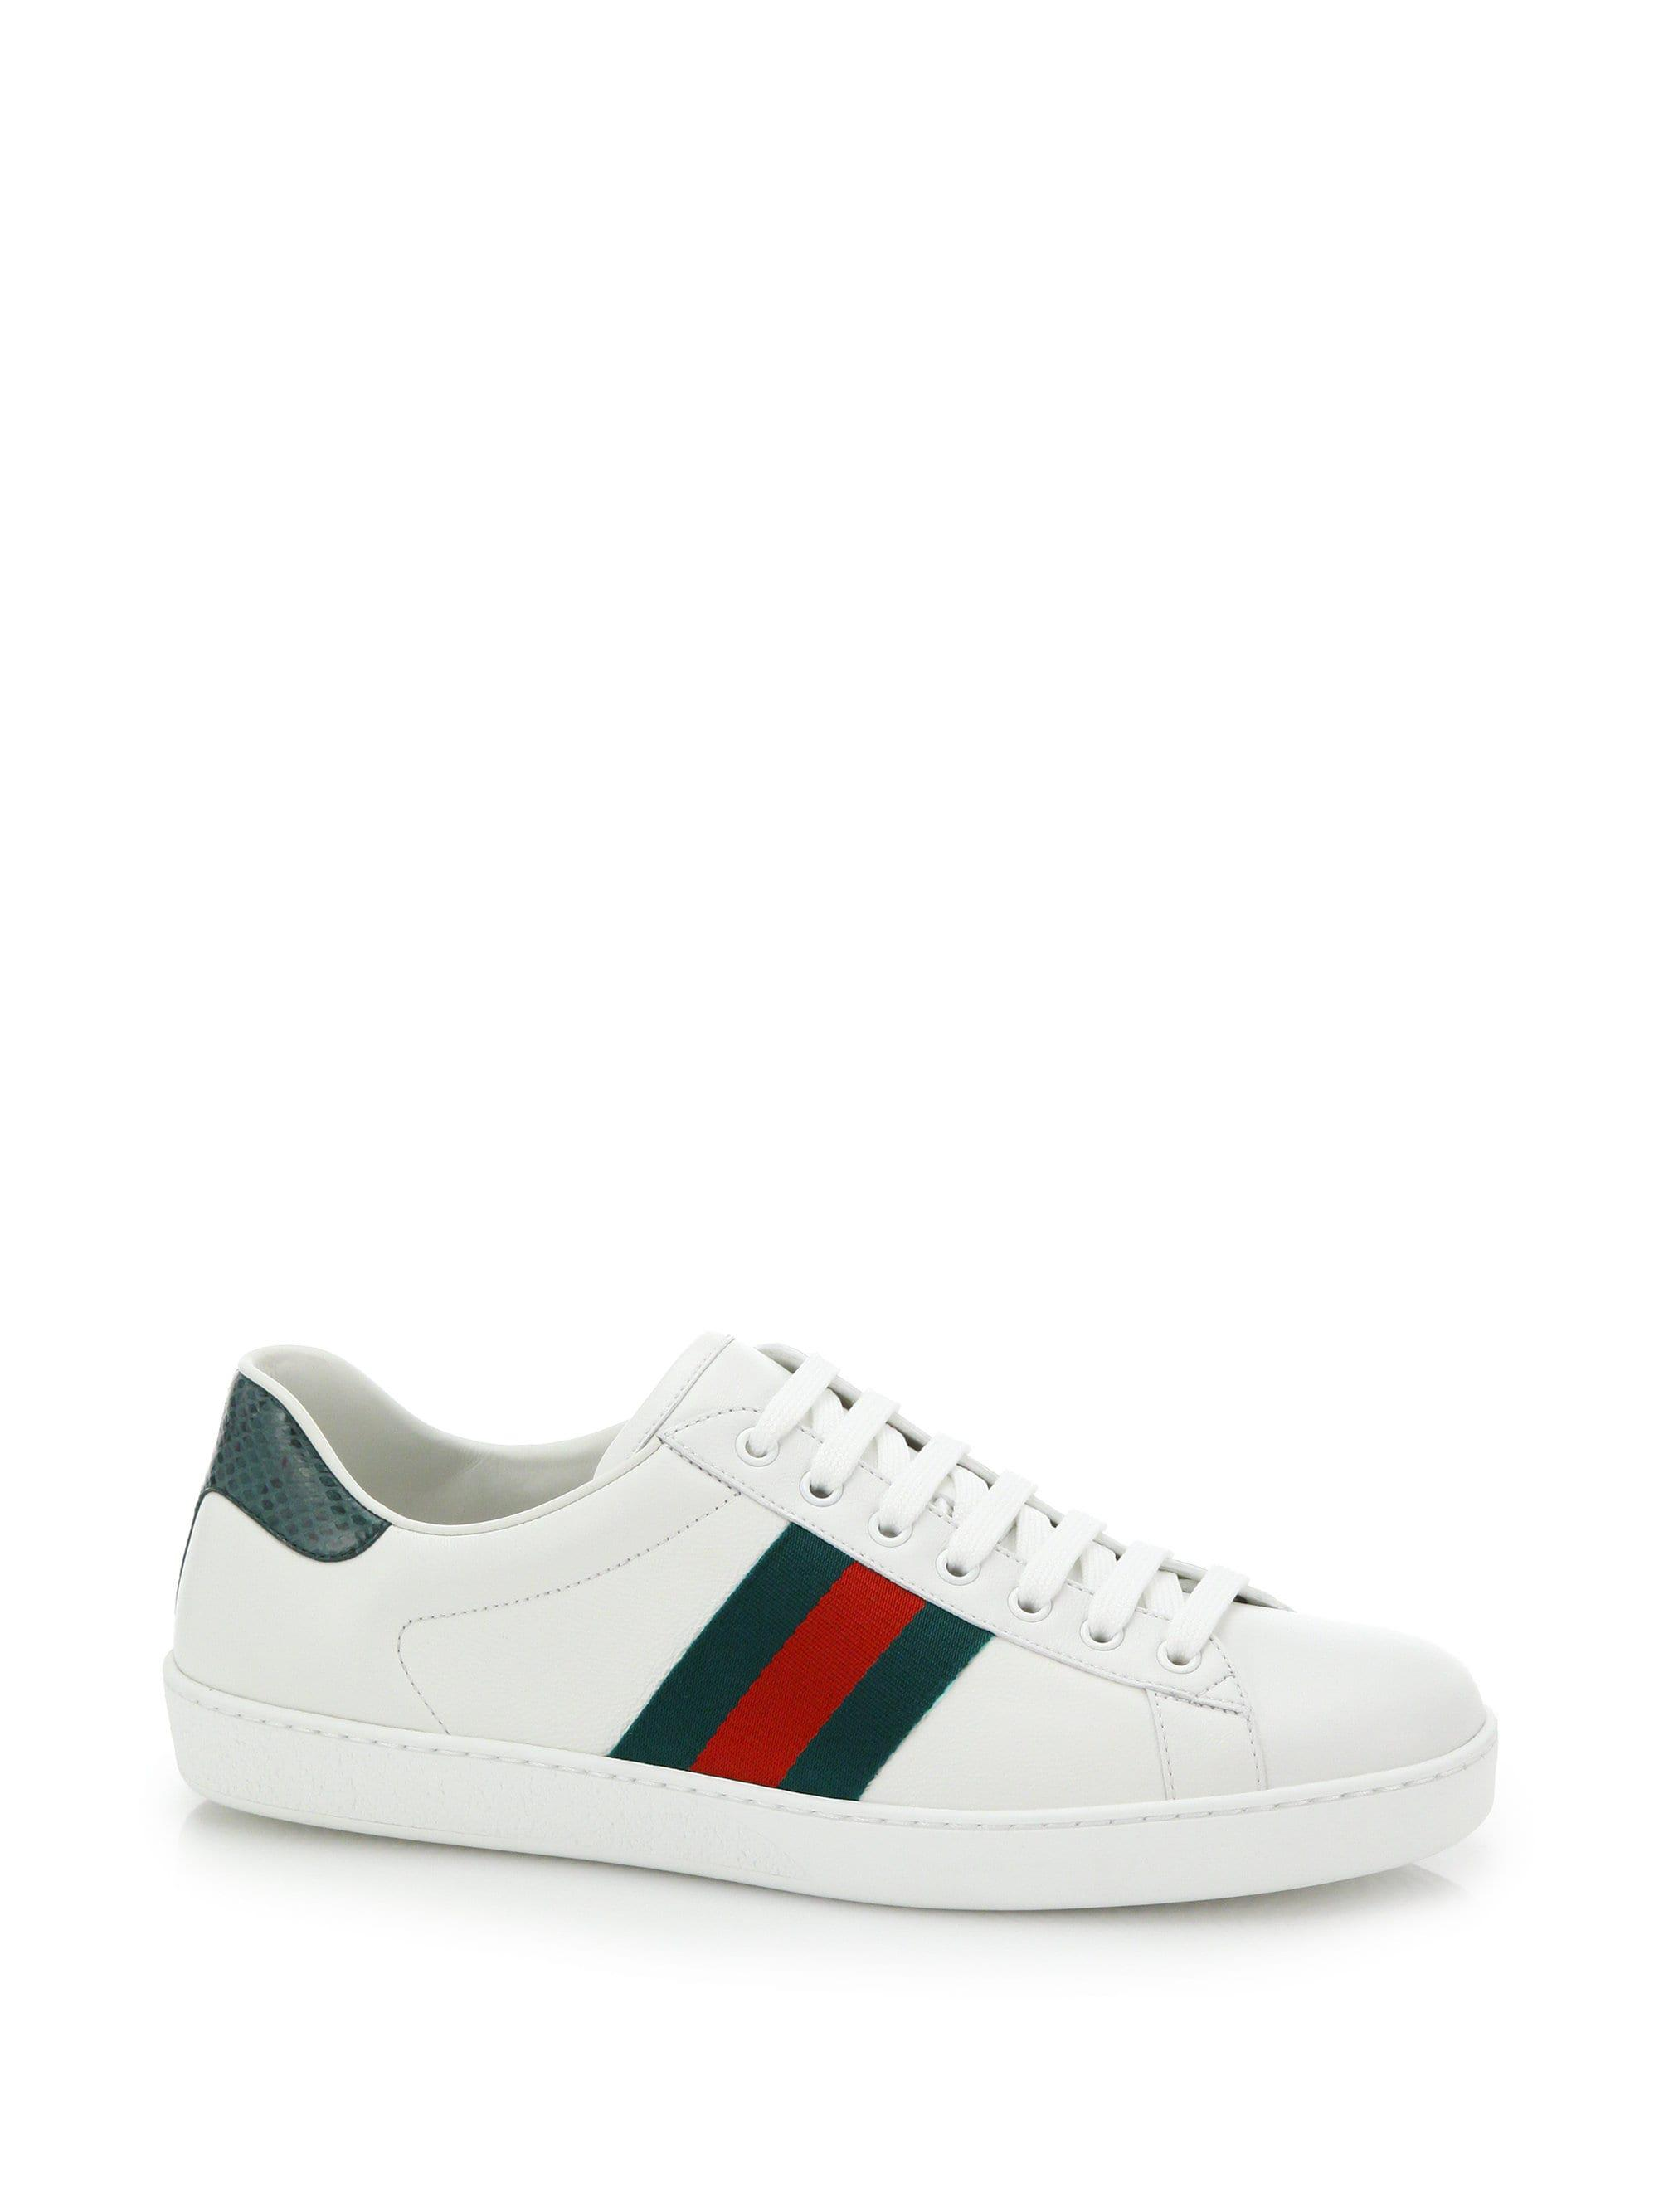 79f3afd52c8 Gucci - White Croc-detail Ace Leather Sneakers for Men - Lyst. View  fullscreen